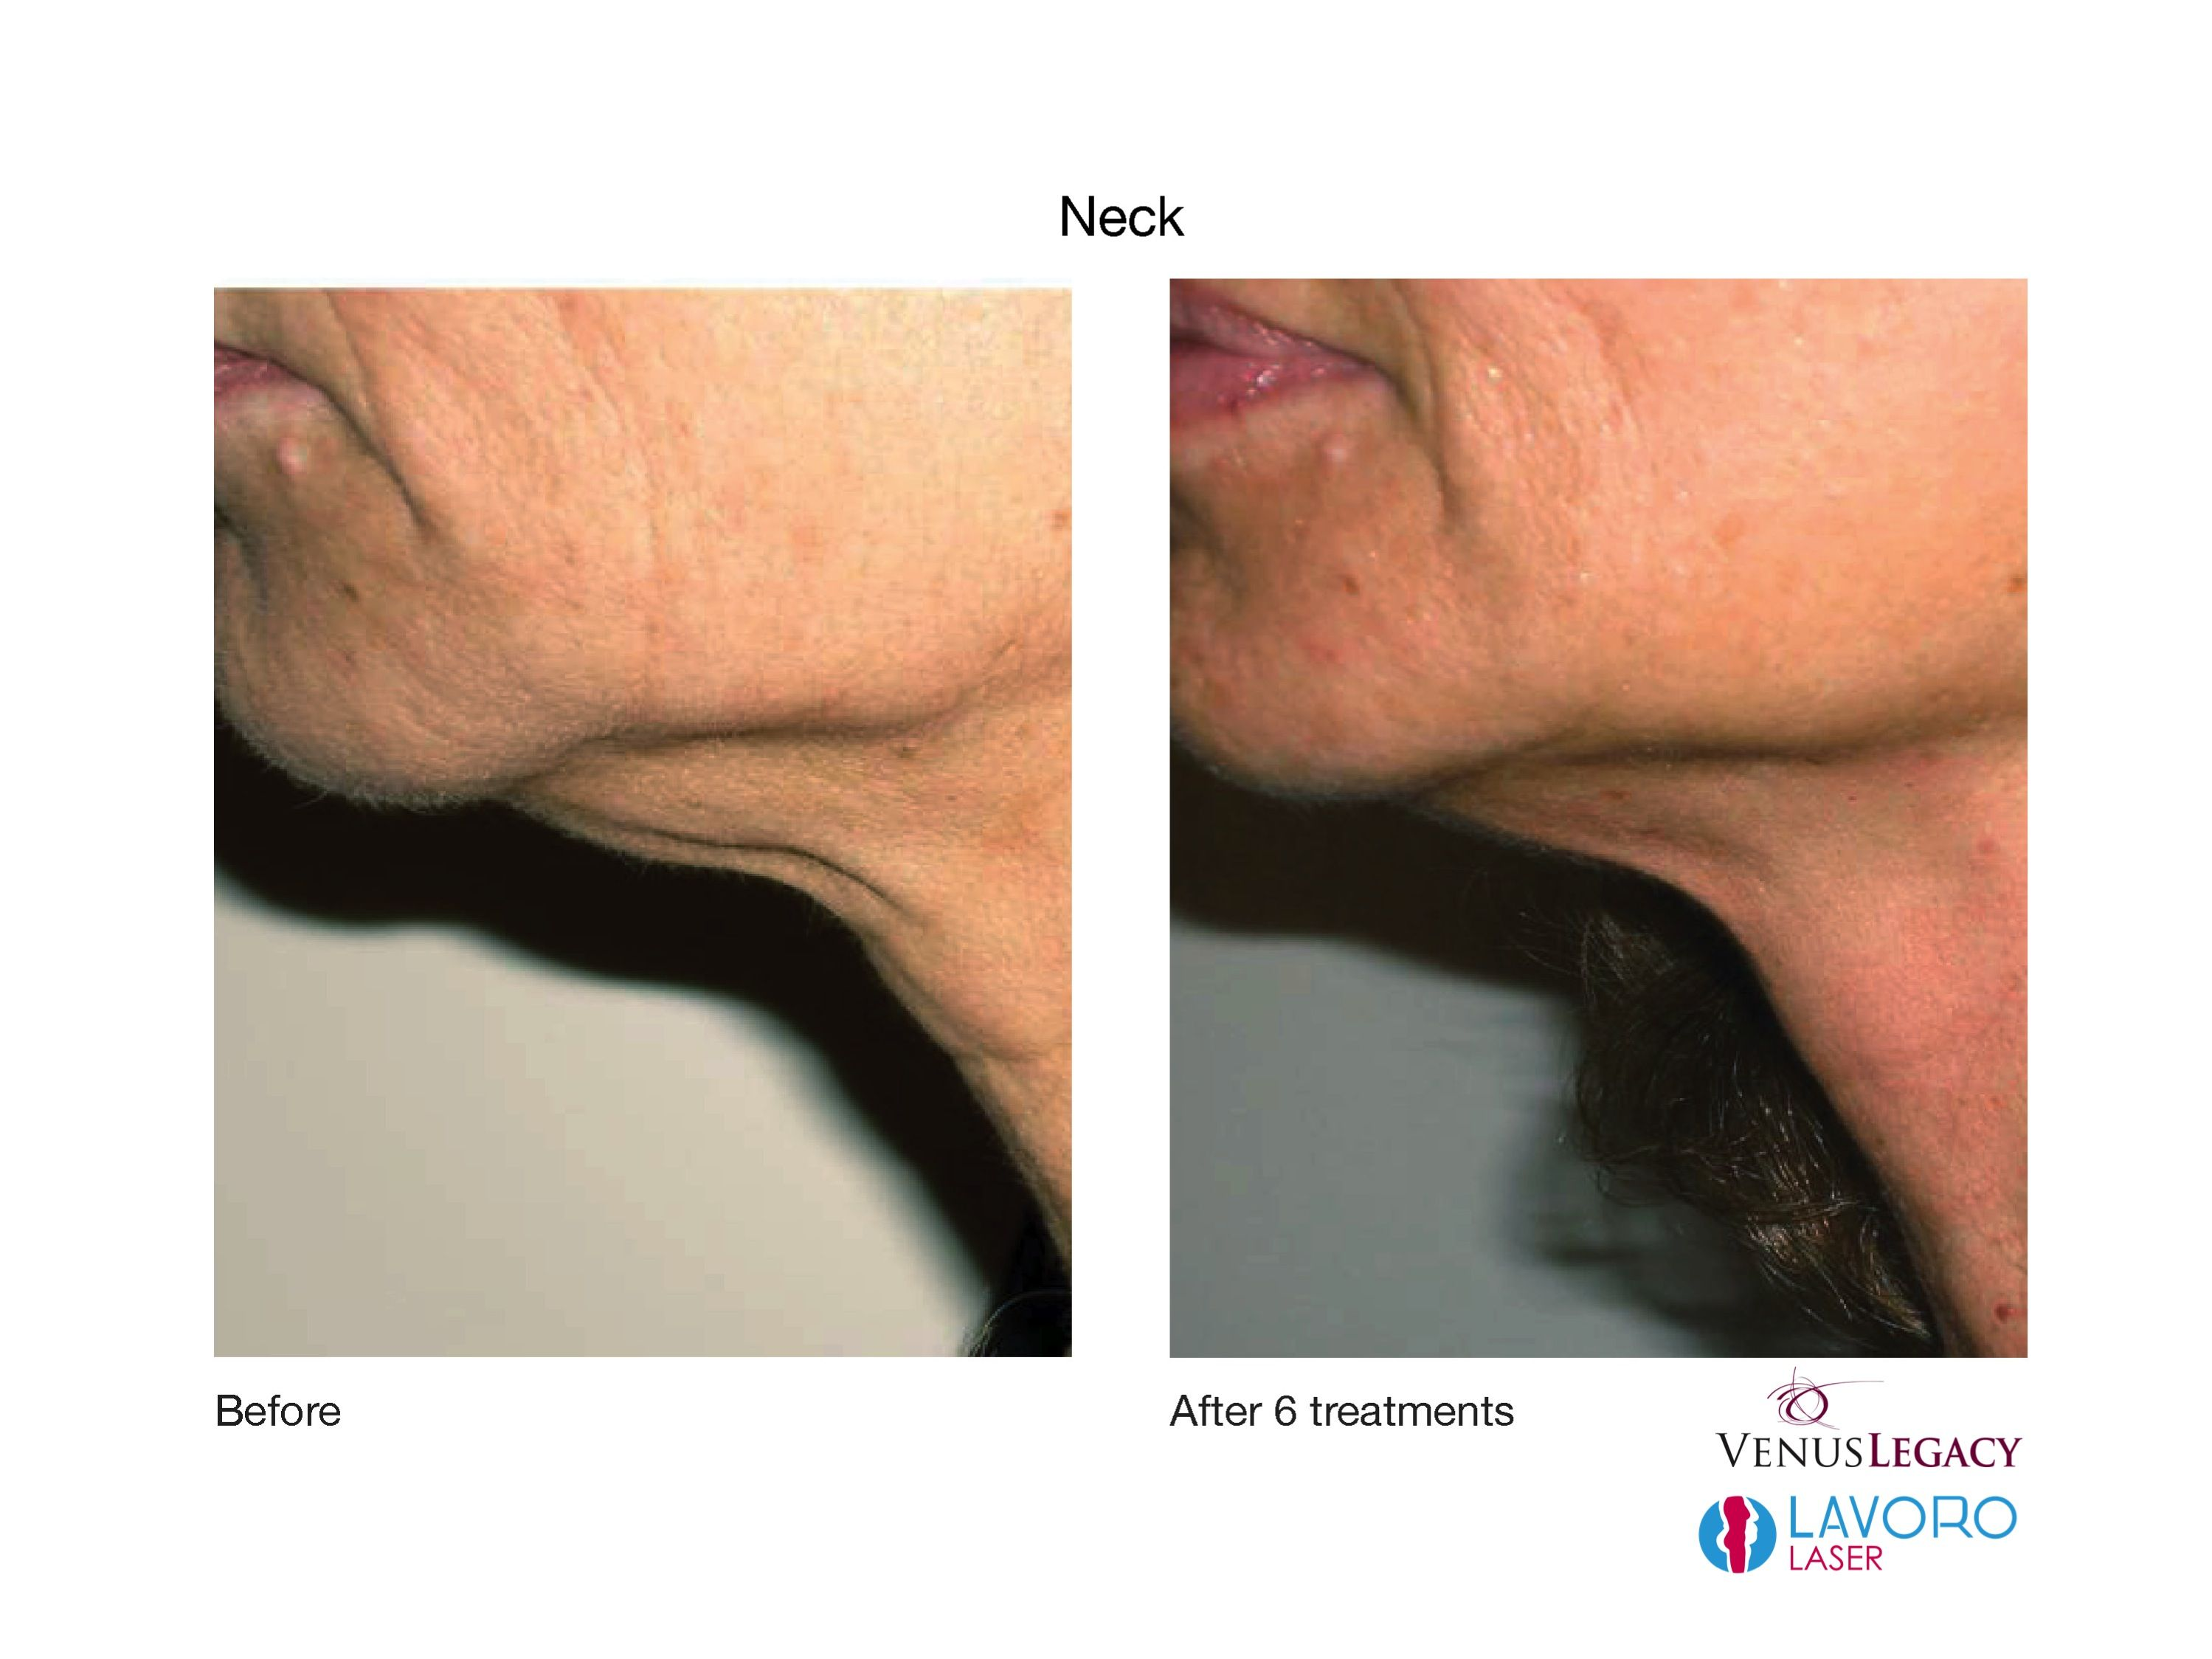 Turkey Neck No More The Skin Tightening Achieved In This Patient From The Venus Legacy Drasti Skin Tightening Treatments Skin Tightening Anti Aging Treatments